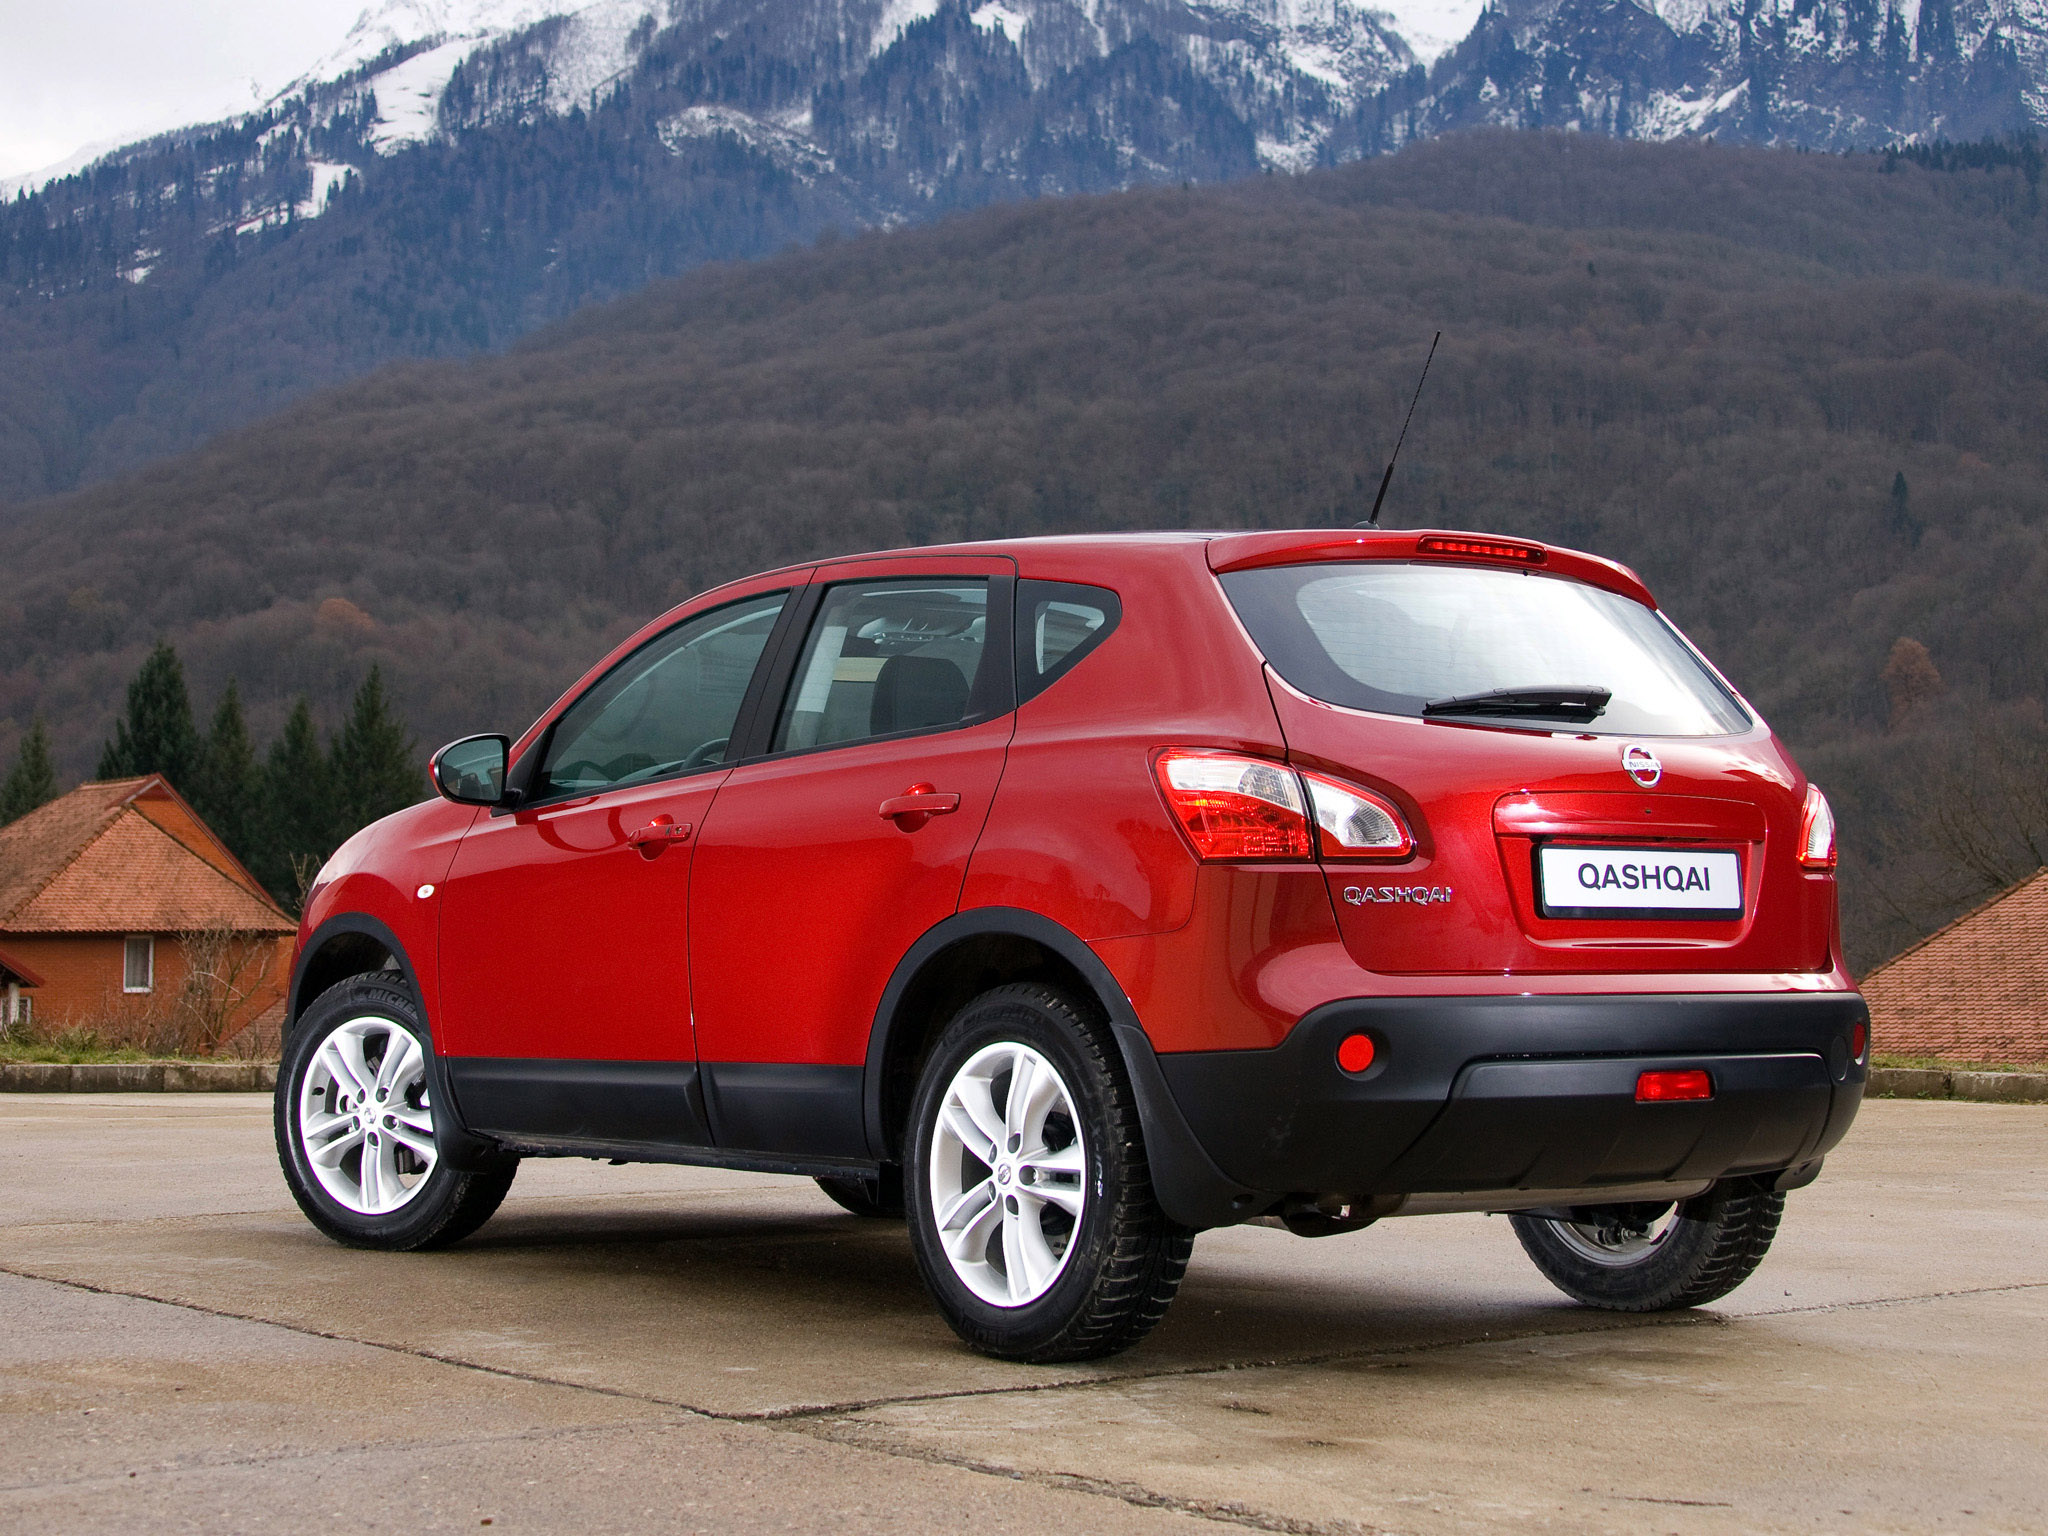 nissan qashqai facelift 2010 nissan qashqai facelift 2010 photo 09 car in pictures car photo. Black Bedroom Furniture Sets. Home Design Ideas